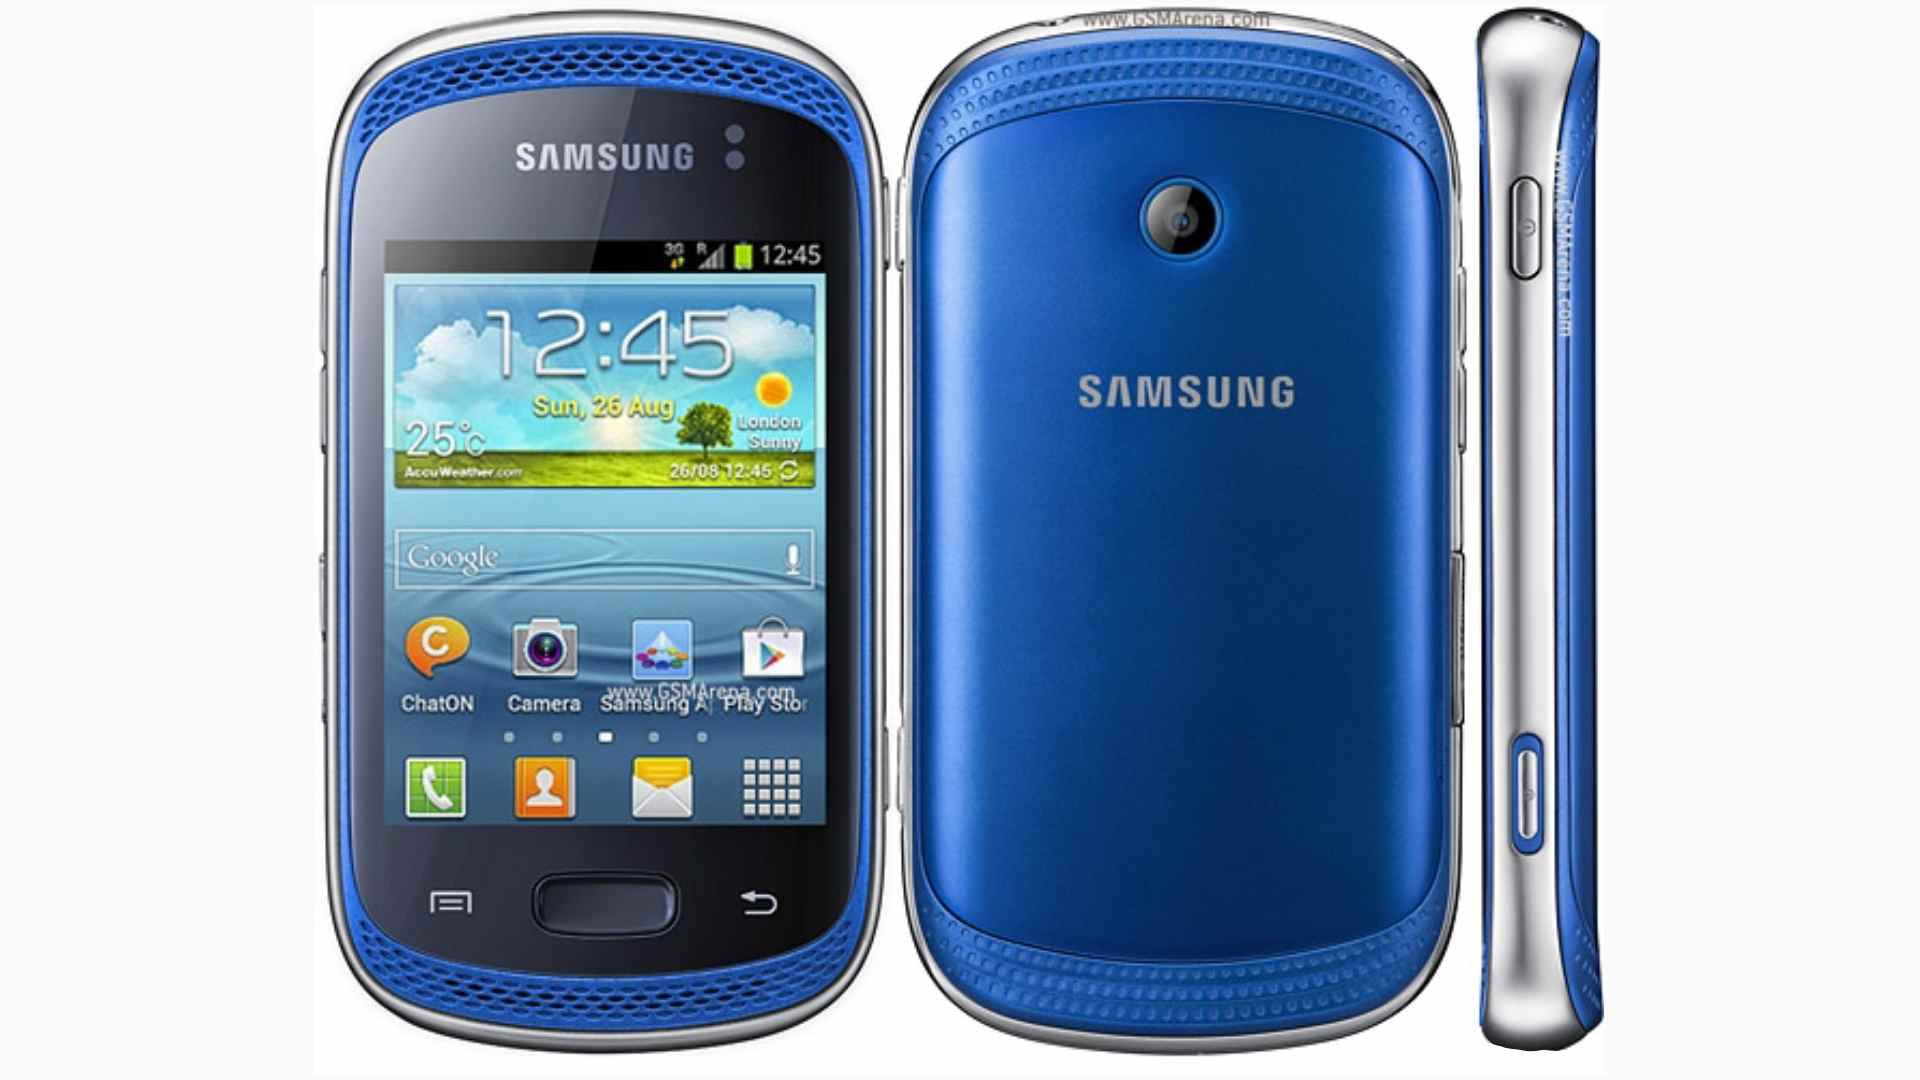 Samsung Galaxy Music Review